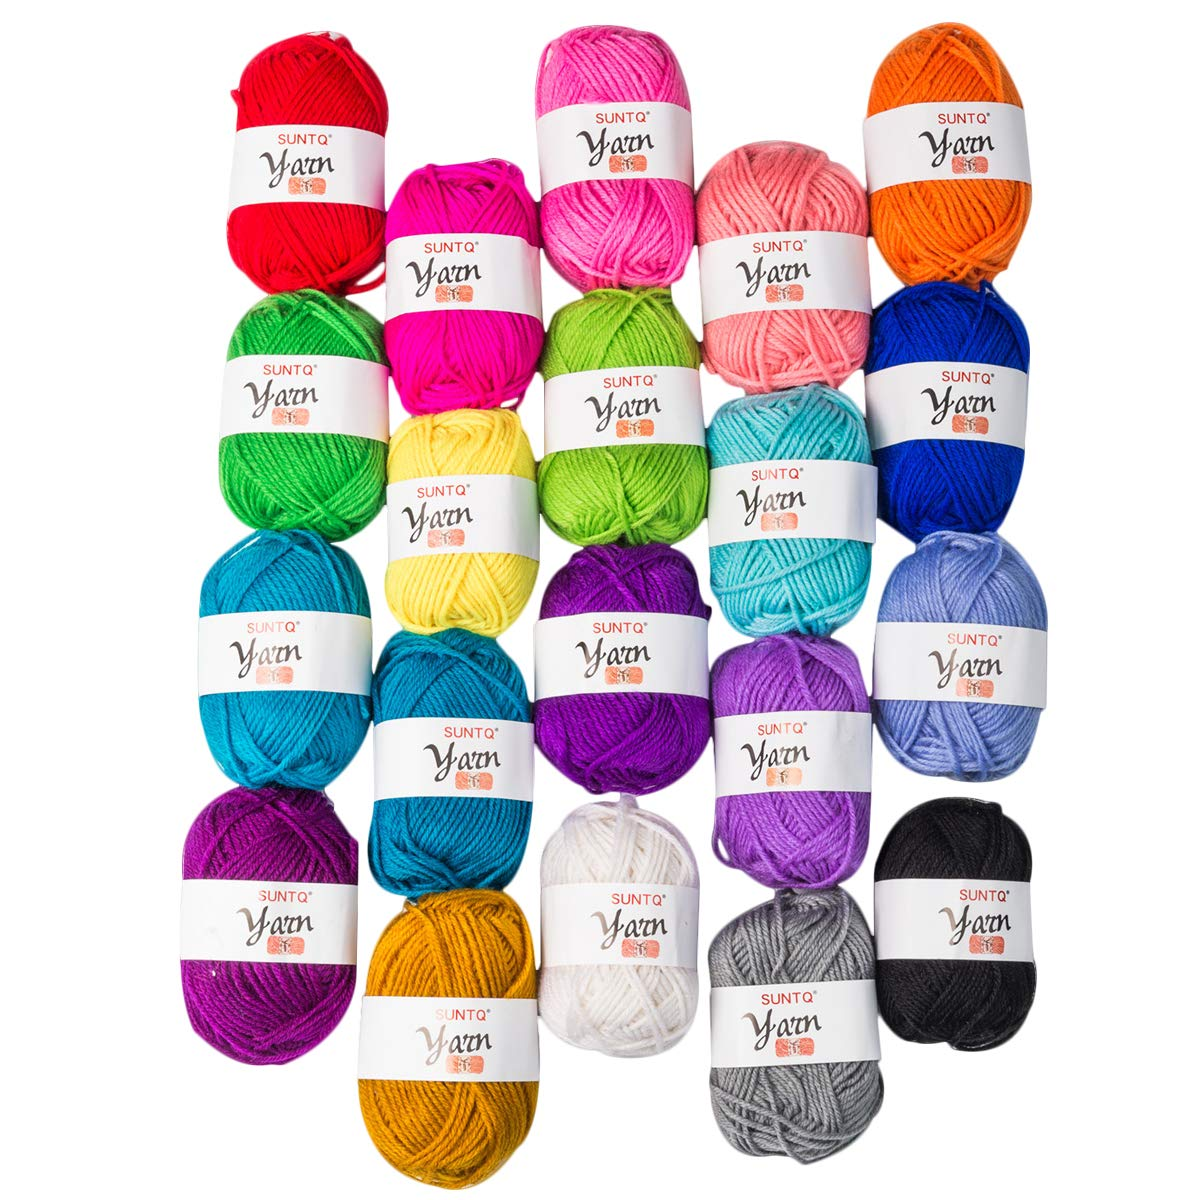 SUNTQ 100% Acrylic Yarn 20 Assorted Colors Skeins Bonbons Yarn for Crochet & Knitting Assorted Rainbow Variety Colored Assortment,0.35oz per Roll,7oz per Package 4336926362